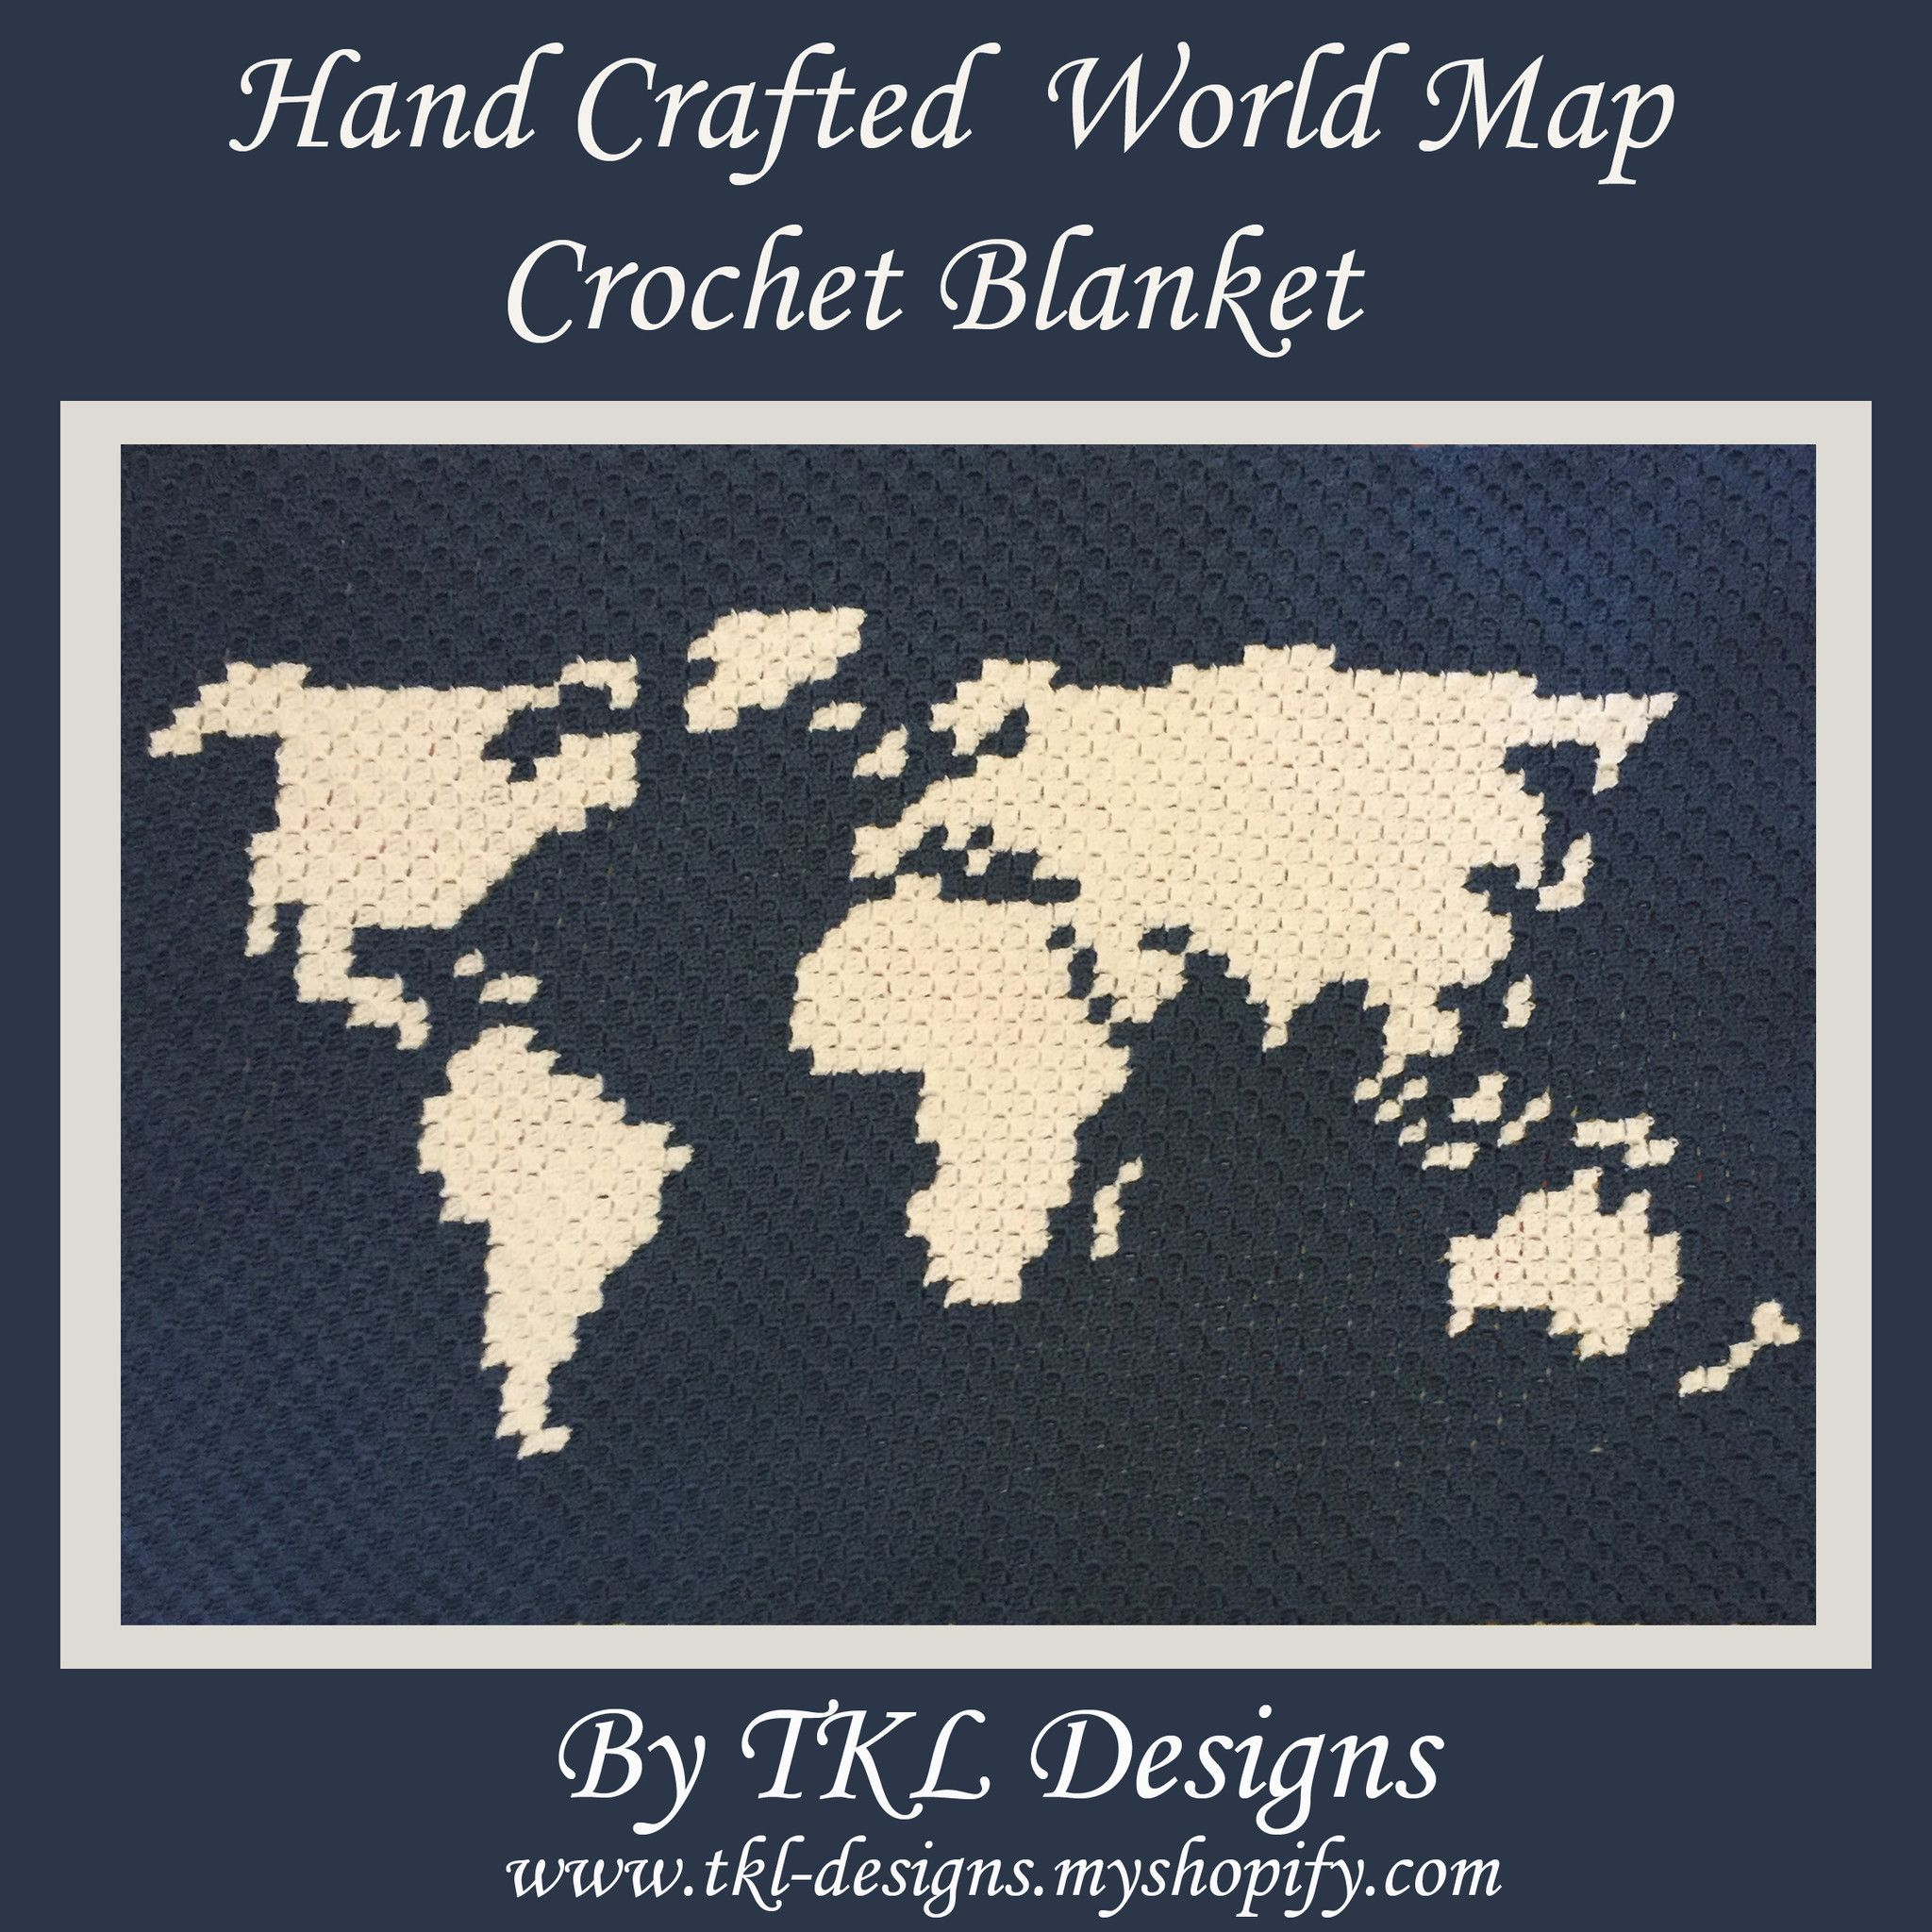 Hand crafted crochet world map blanket home decor aphgan throw hand crafted crochet world map blanket home decor aphgan throw c2c pixel gumiabroncs Image collections